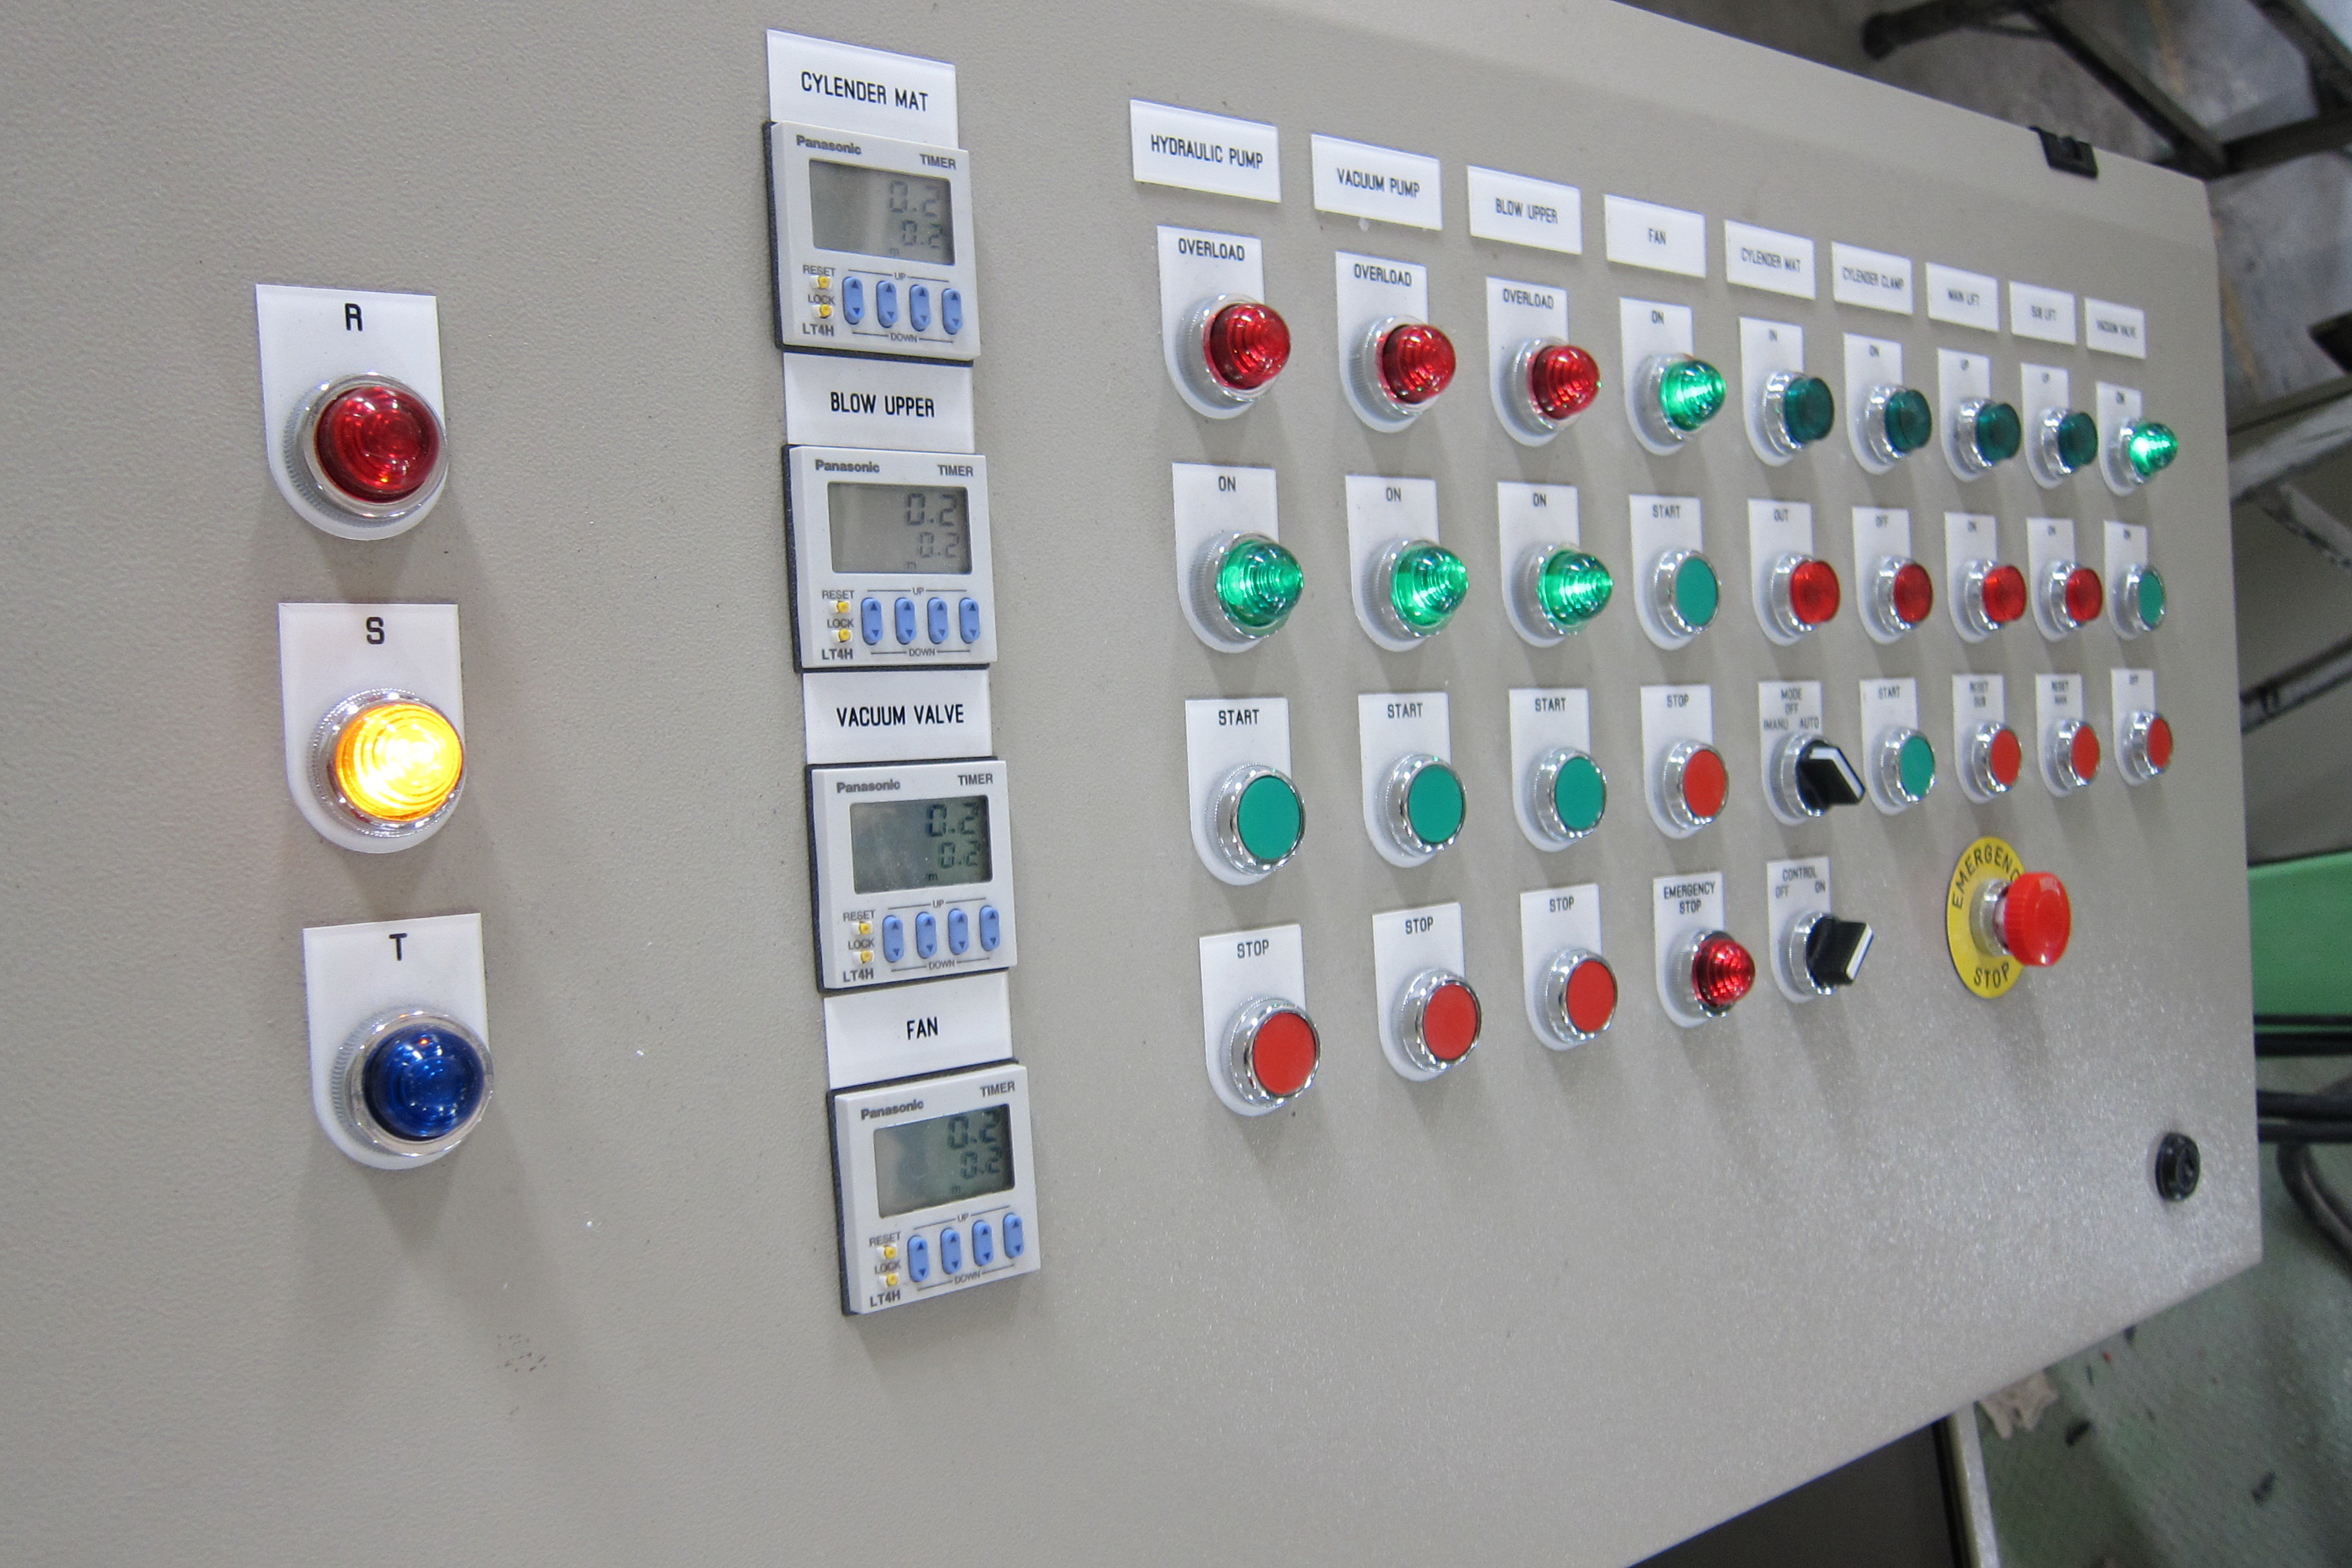 Design services, production and installation of electrical systems